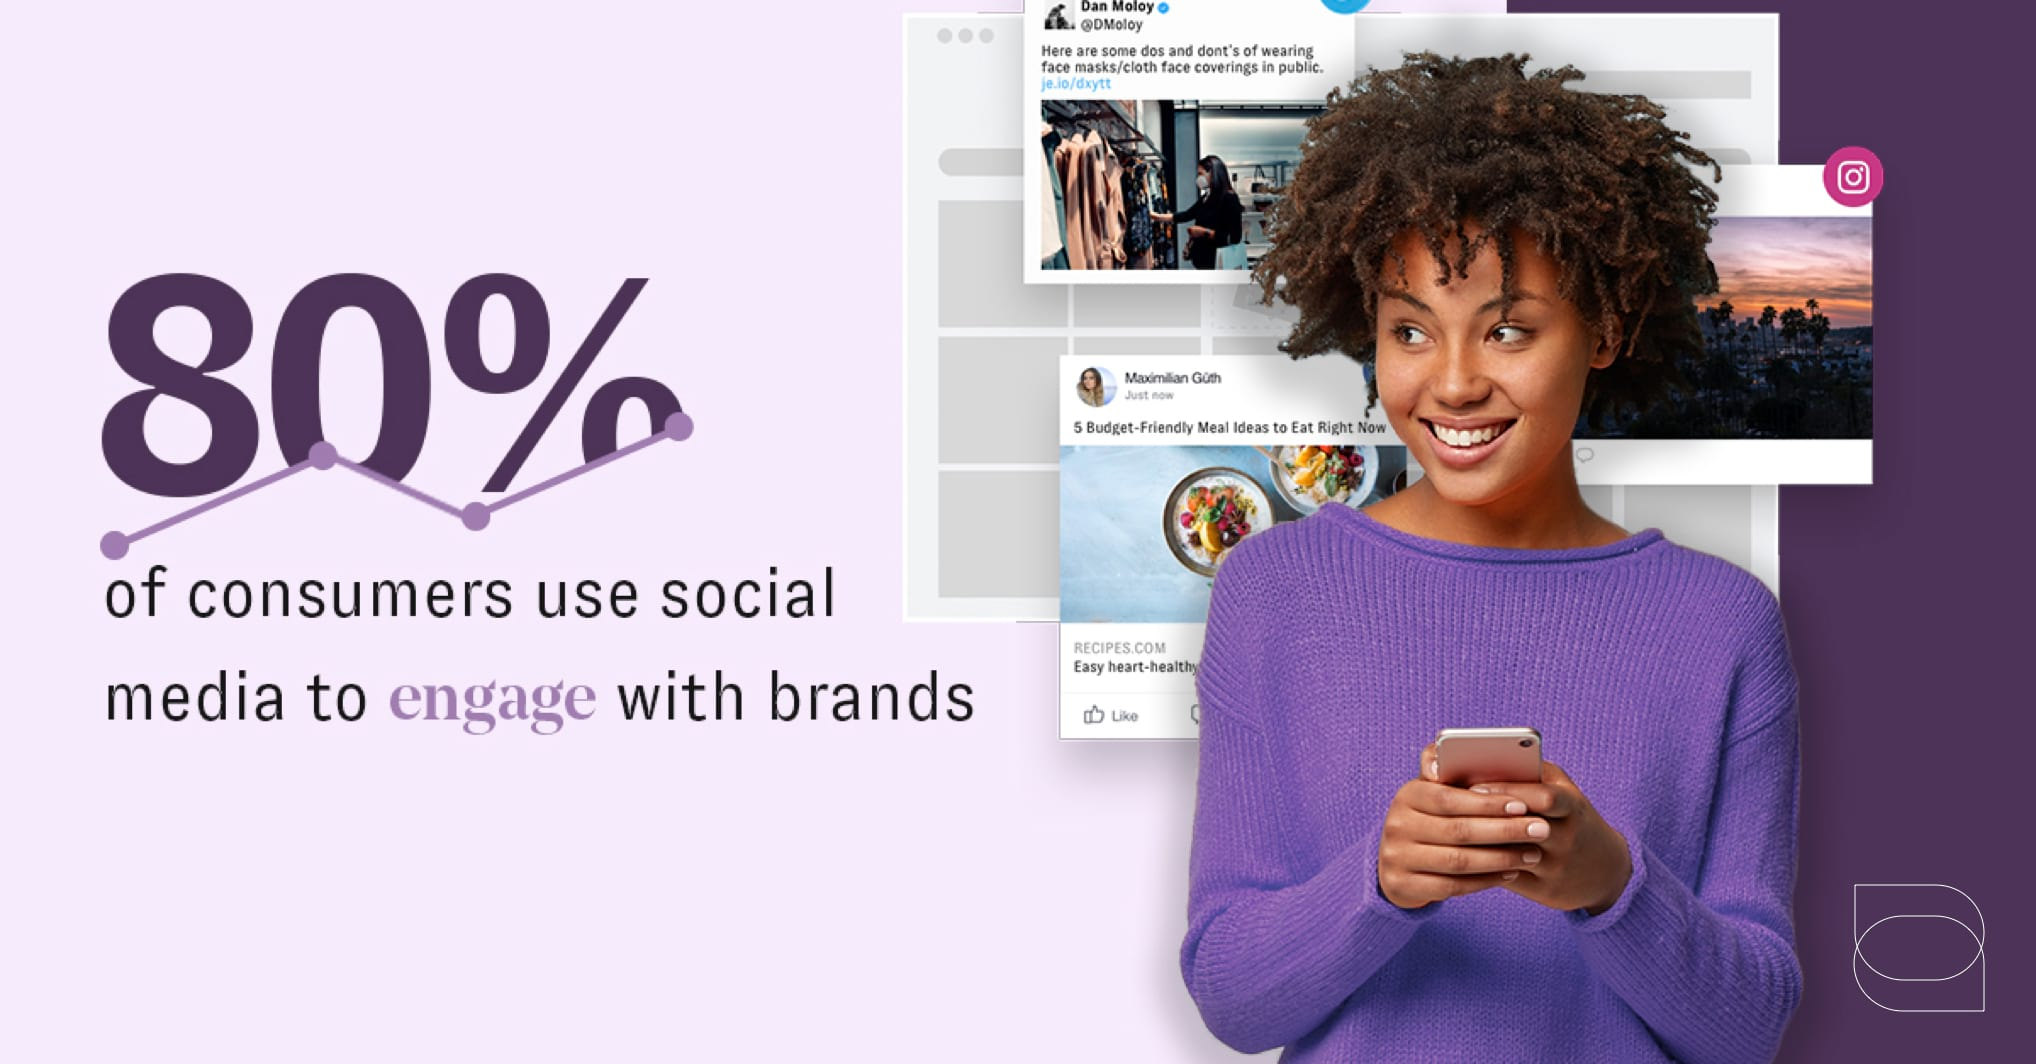 Social listening AI assists Social Engagement marketing because 80% of consumers use social media to engage with brands, as this images says in purple text. But social can be overwhelming especially for enterprise brand so they need social listening AI to filter and auto-categorize messages to the right teams, as the image of a woman with her phone and multiple social images hovering behind her show.